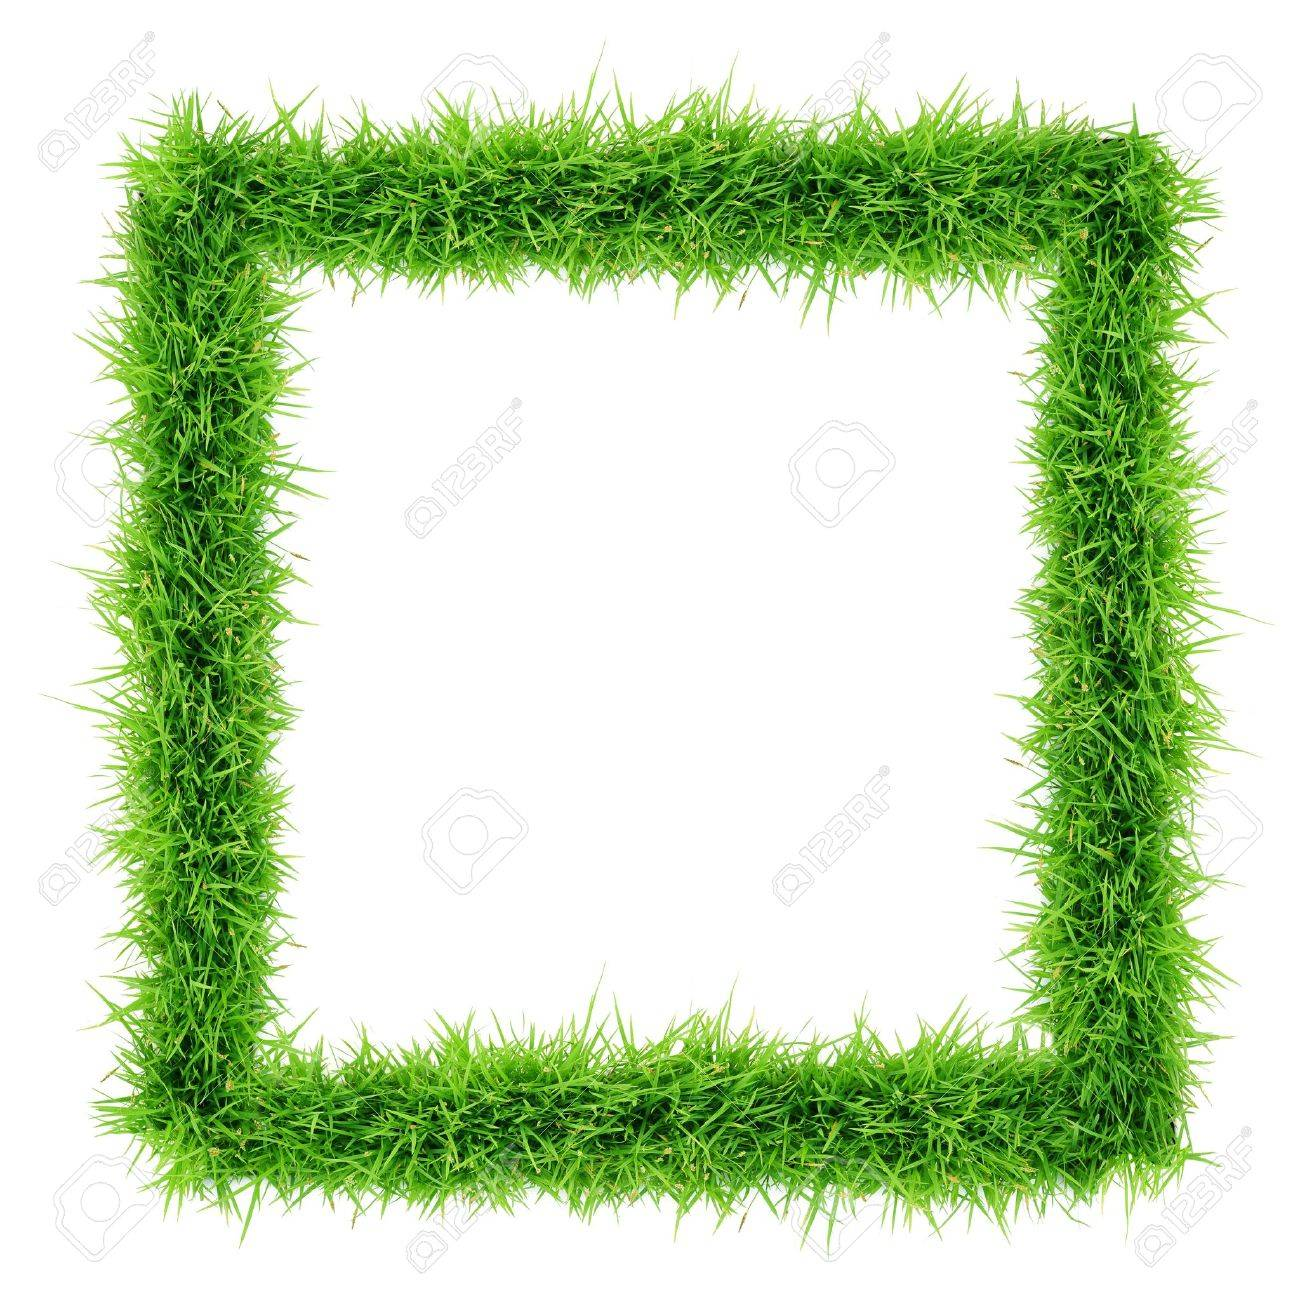 grass frame top view on white background - 20178220